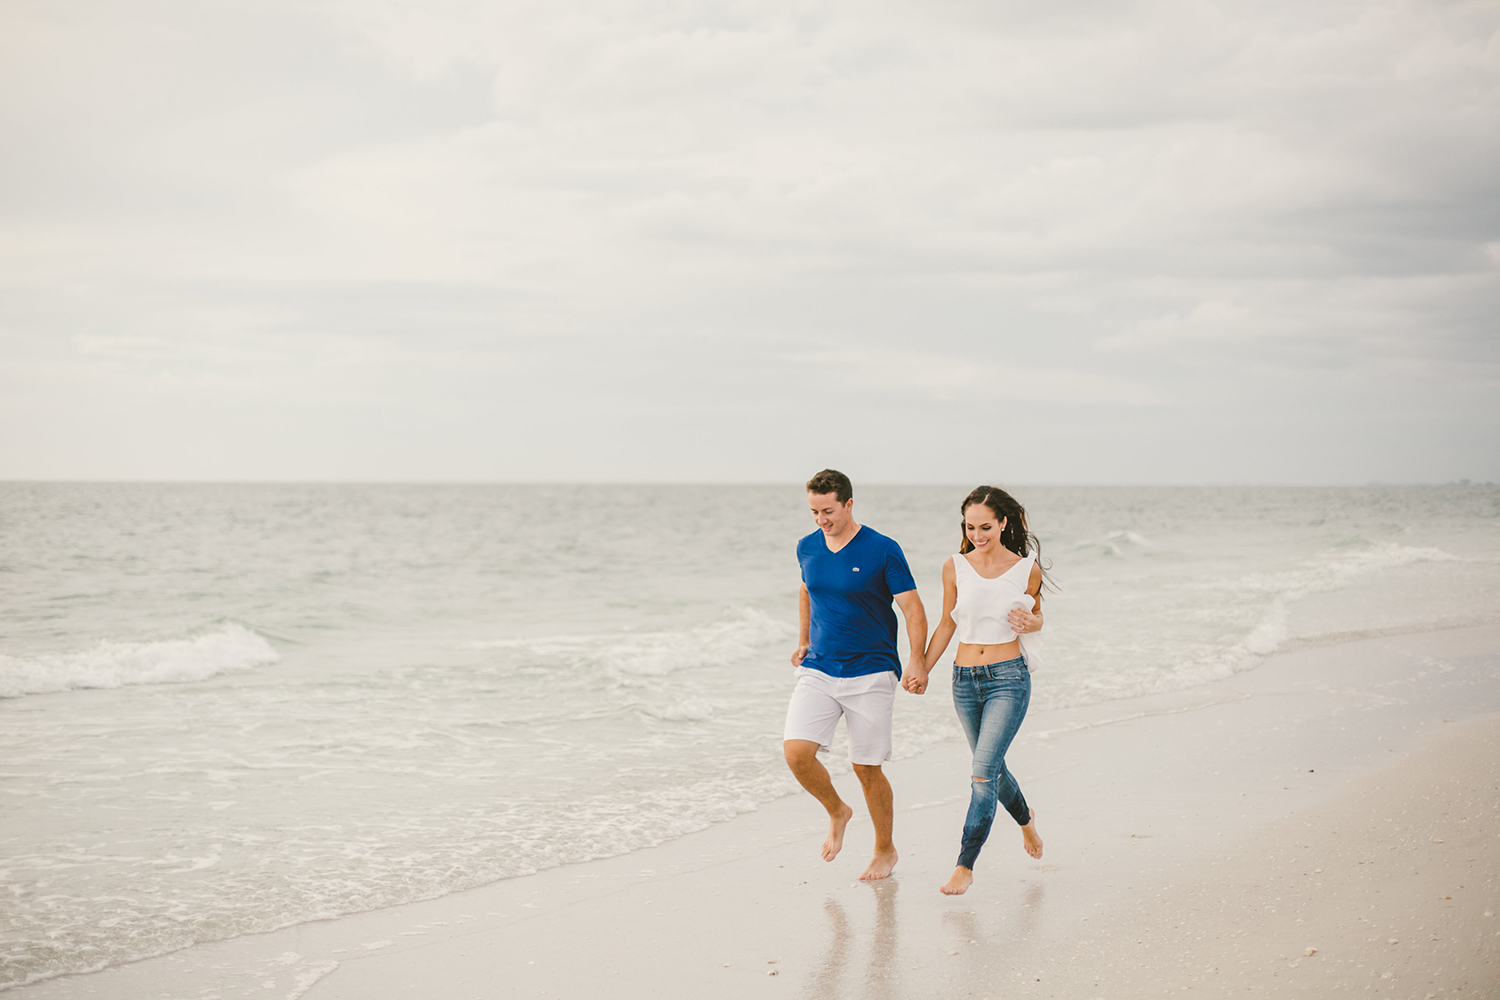 romantic engagement shoot on a beach in florida